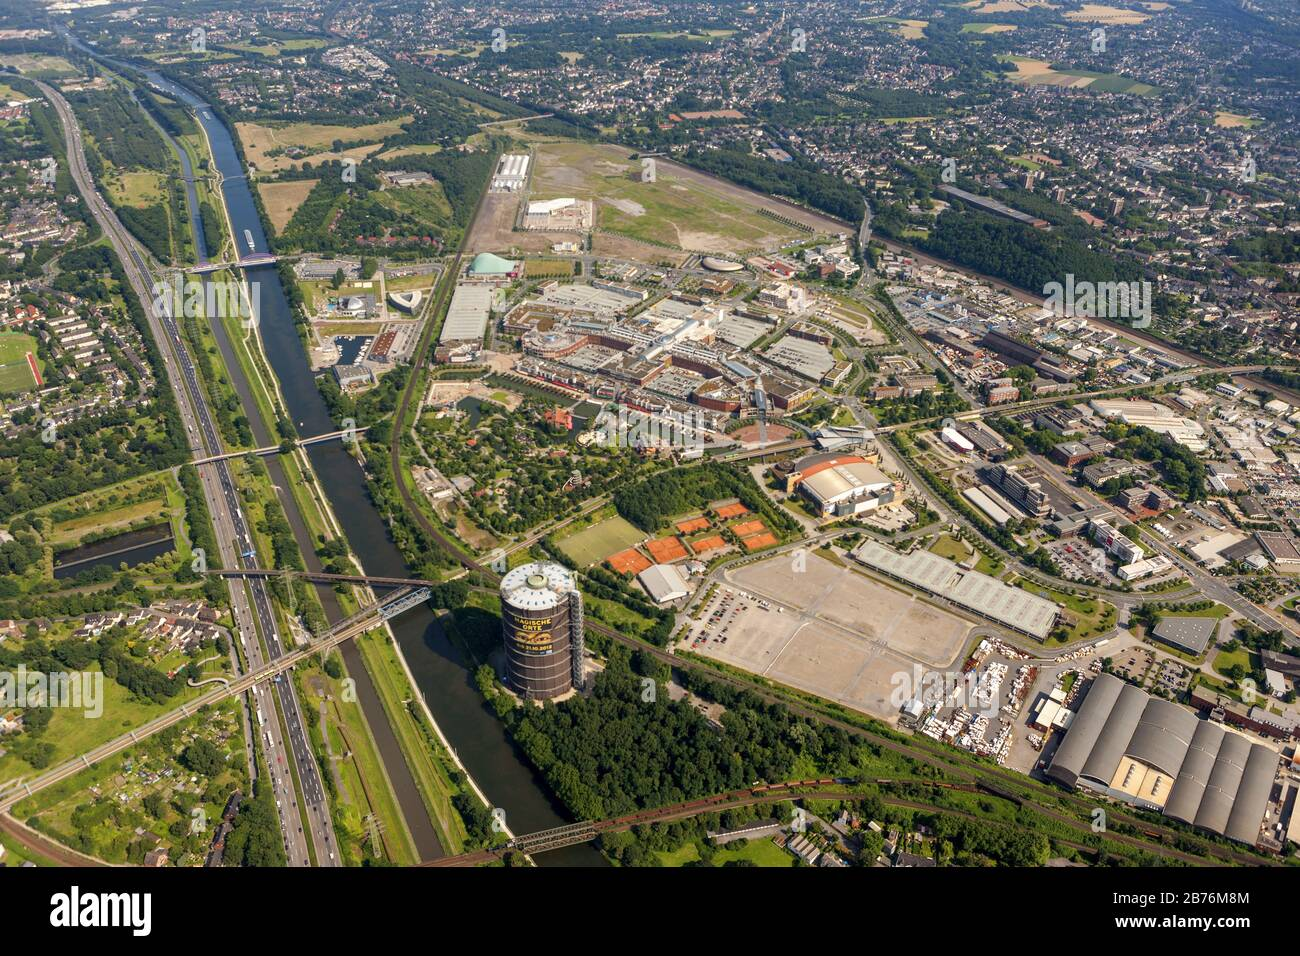 shopping centre CentrO in Oberhausen and Gasometer, 24.07.2012, aerial view, Germany, North Rhine-Westphalia, Ruhr Area, Oberhausen Stock Photo